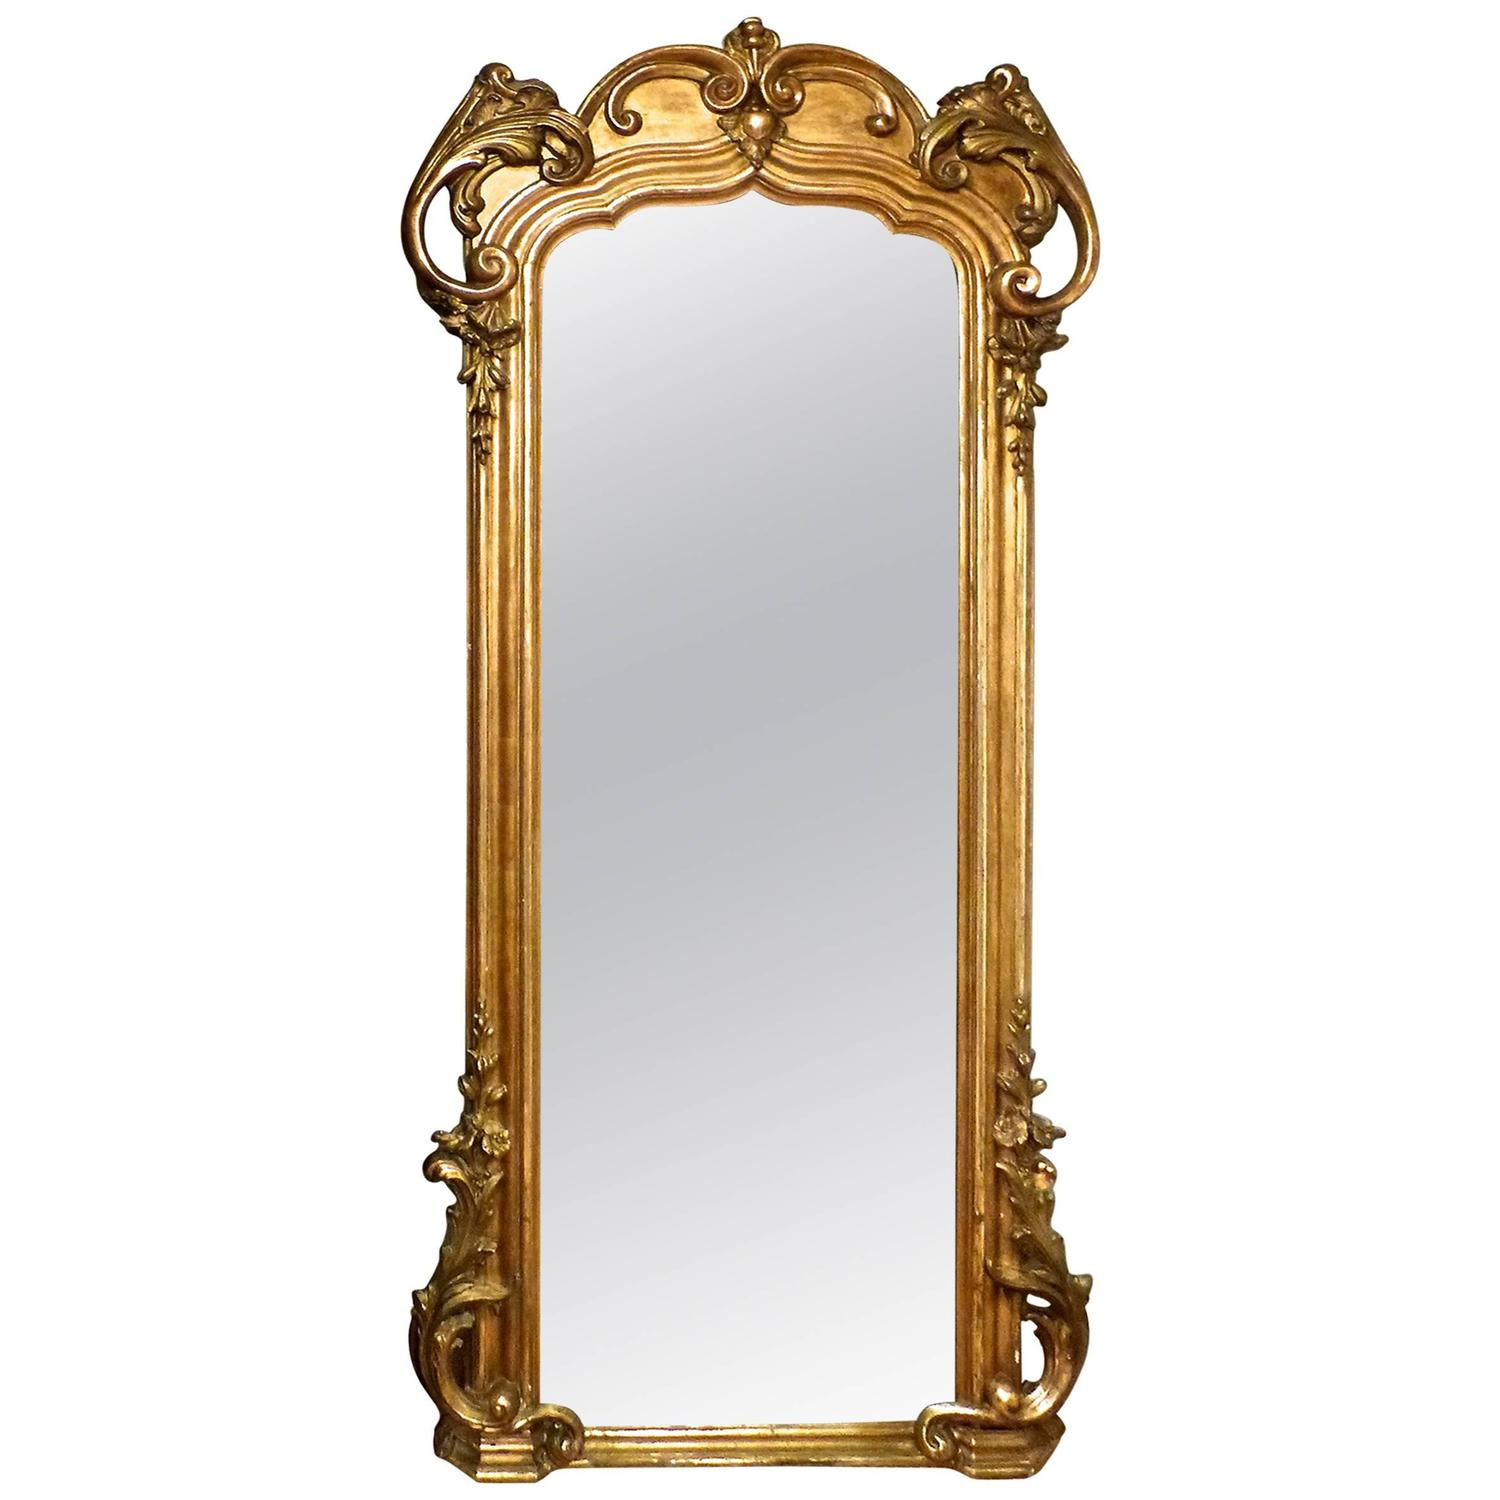 Art Nouveau Mirror For Sale At 1stdibs